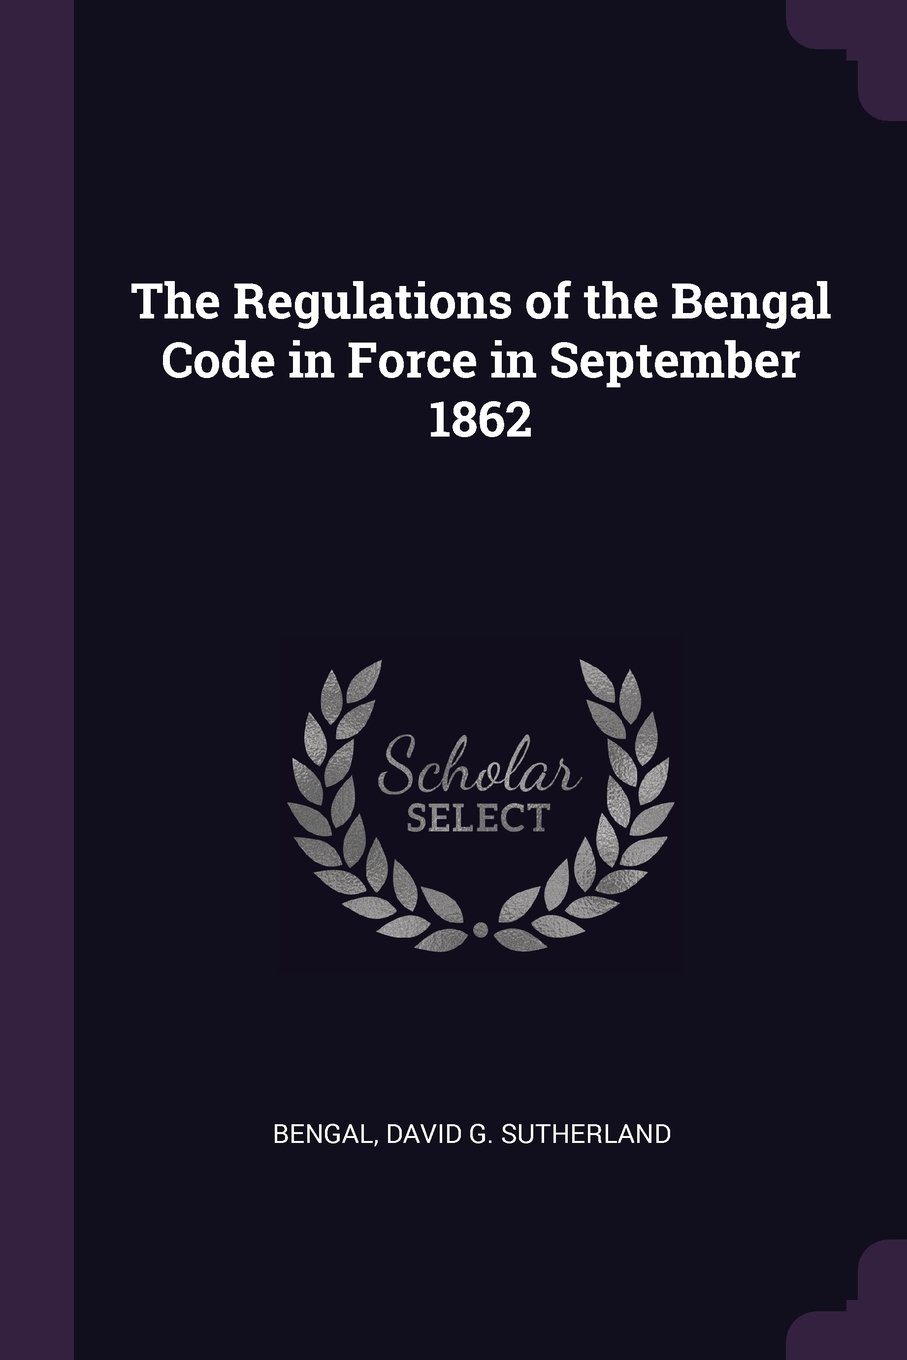 The Regulations of the Bengal Code in Force in September 1862 PDF